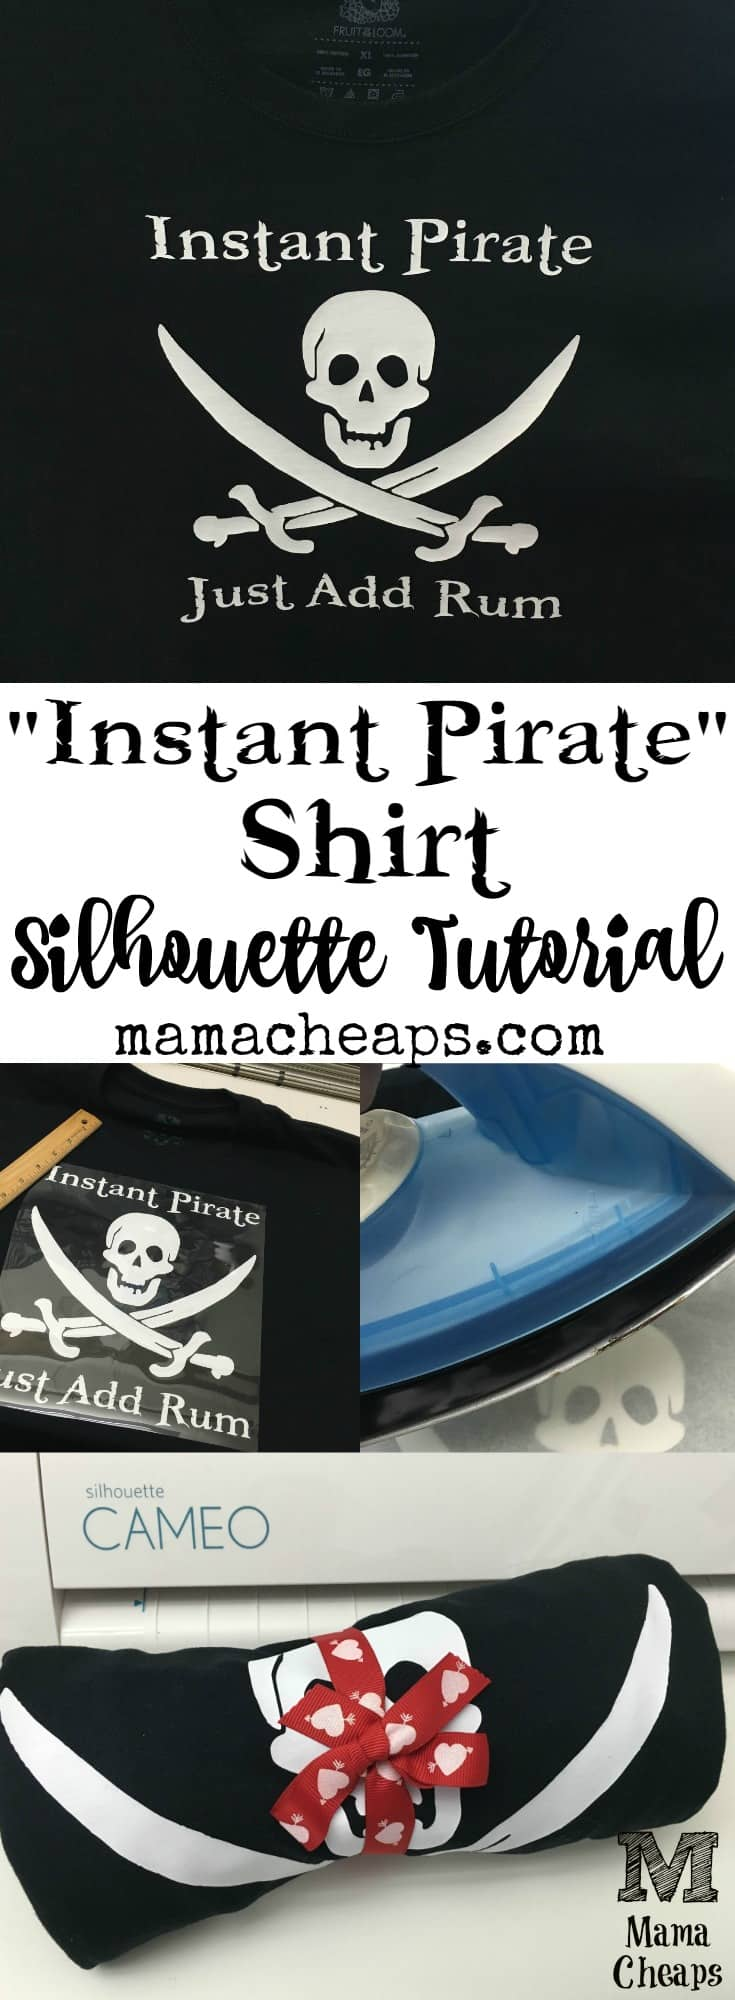 Instant Pirate Just Add Rum Shirt Tutorial